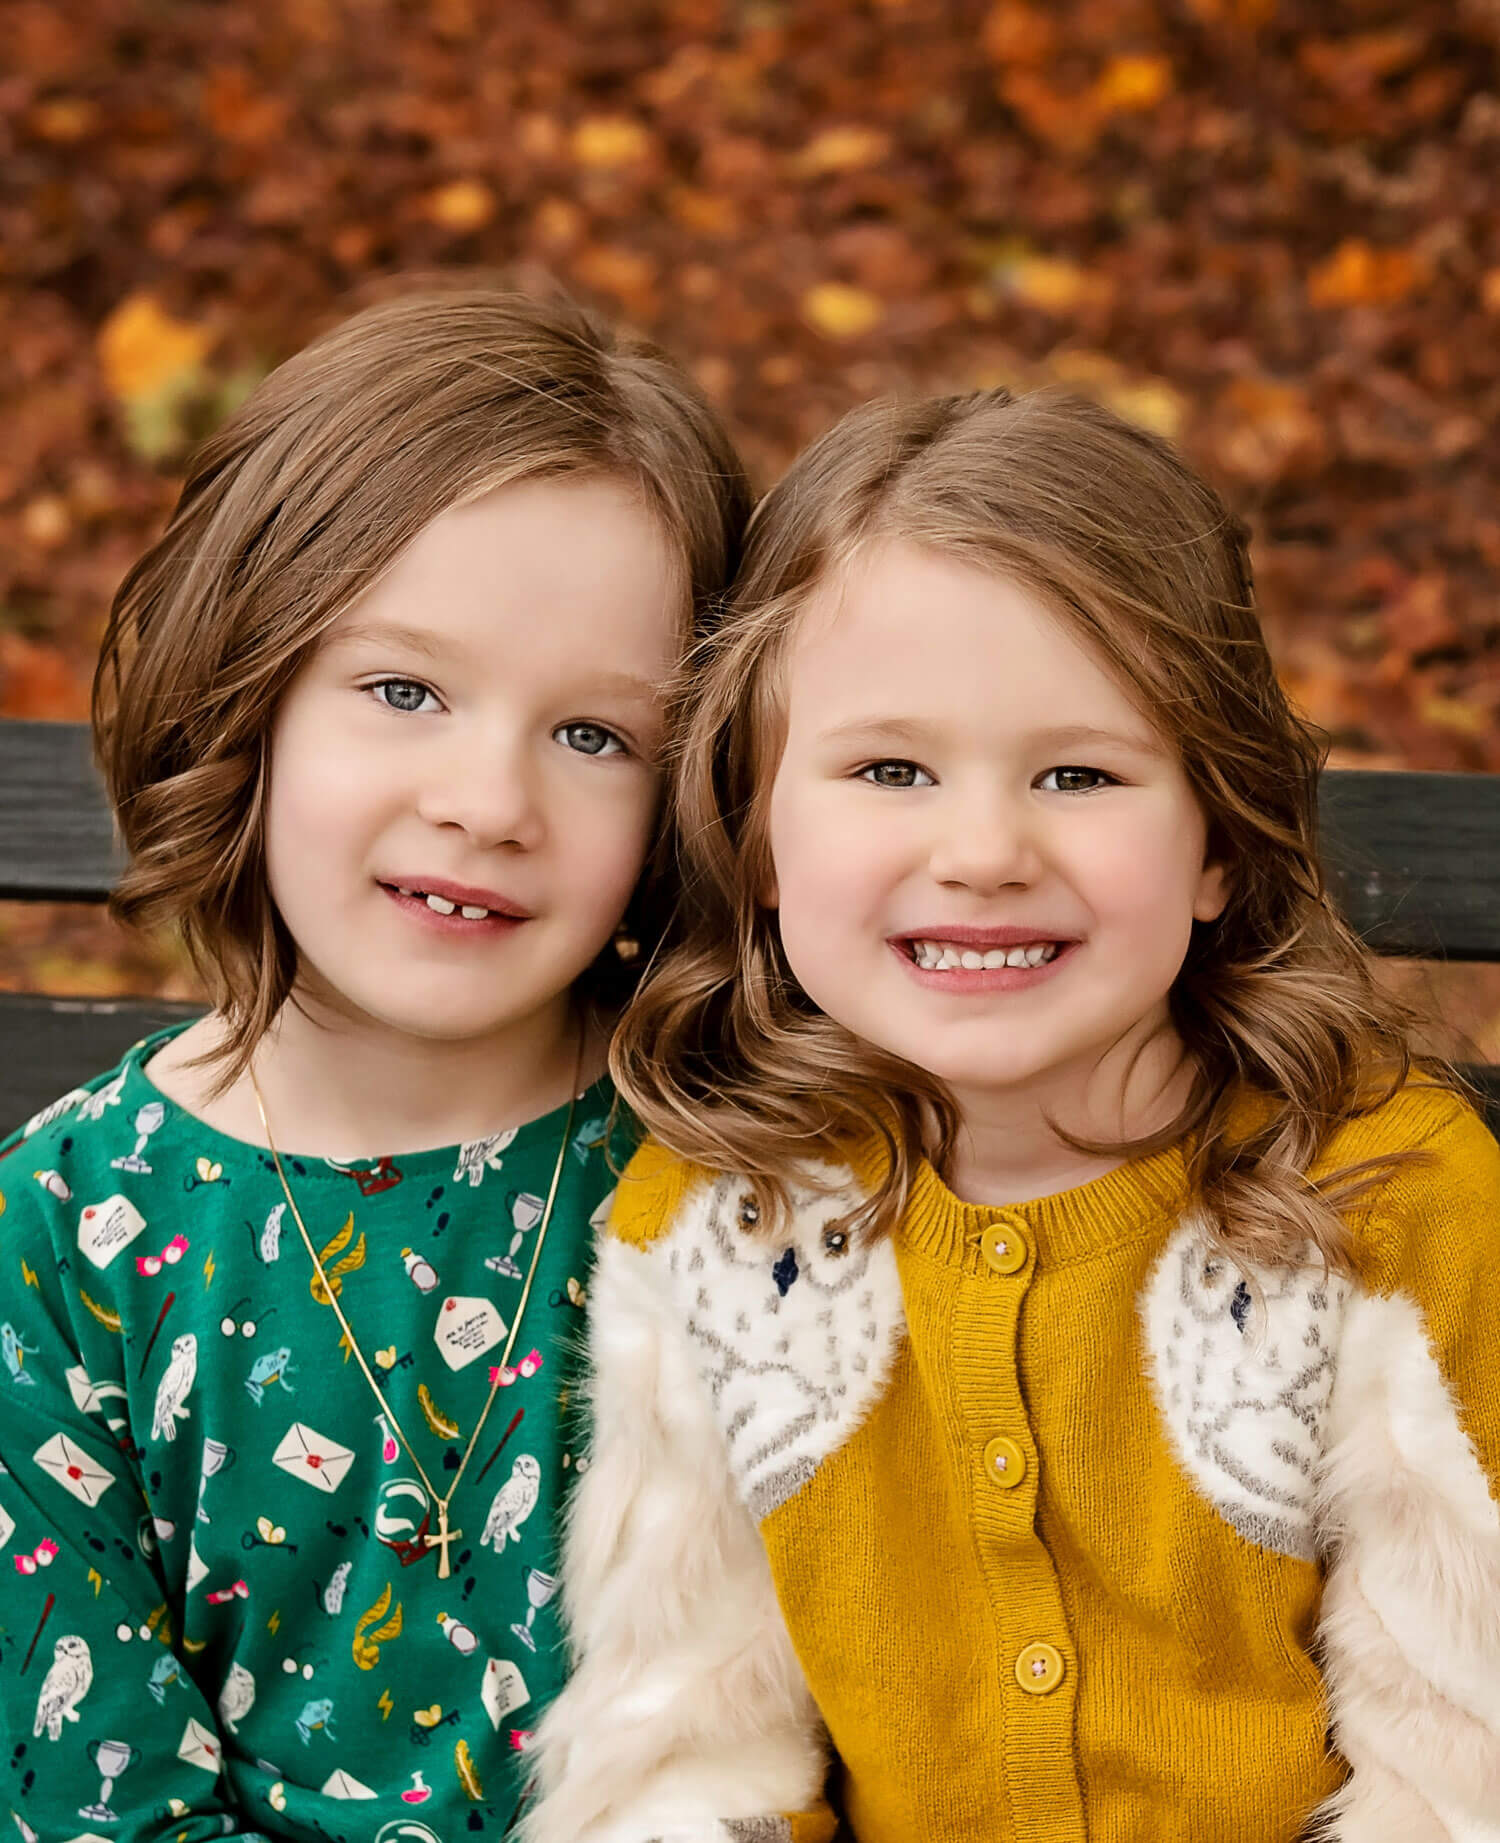 Close up of Nuala (left) and Aoife (right) sitting together. Nuala is wearing a green Harry Potter dress. Aoife has a mustard sweater with Harry Potter's owl, Hedwig, on the sleeves.